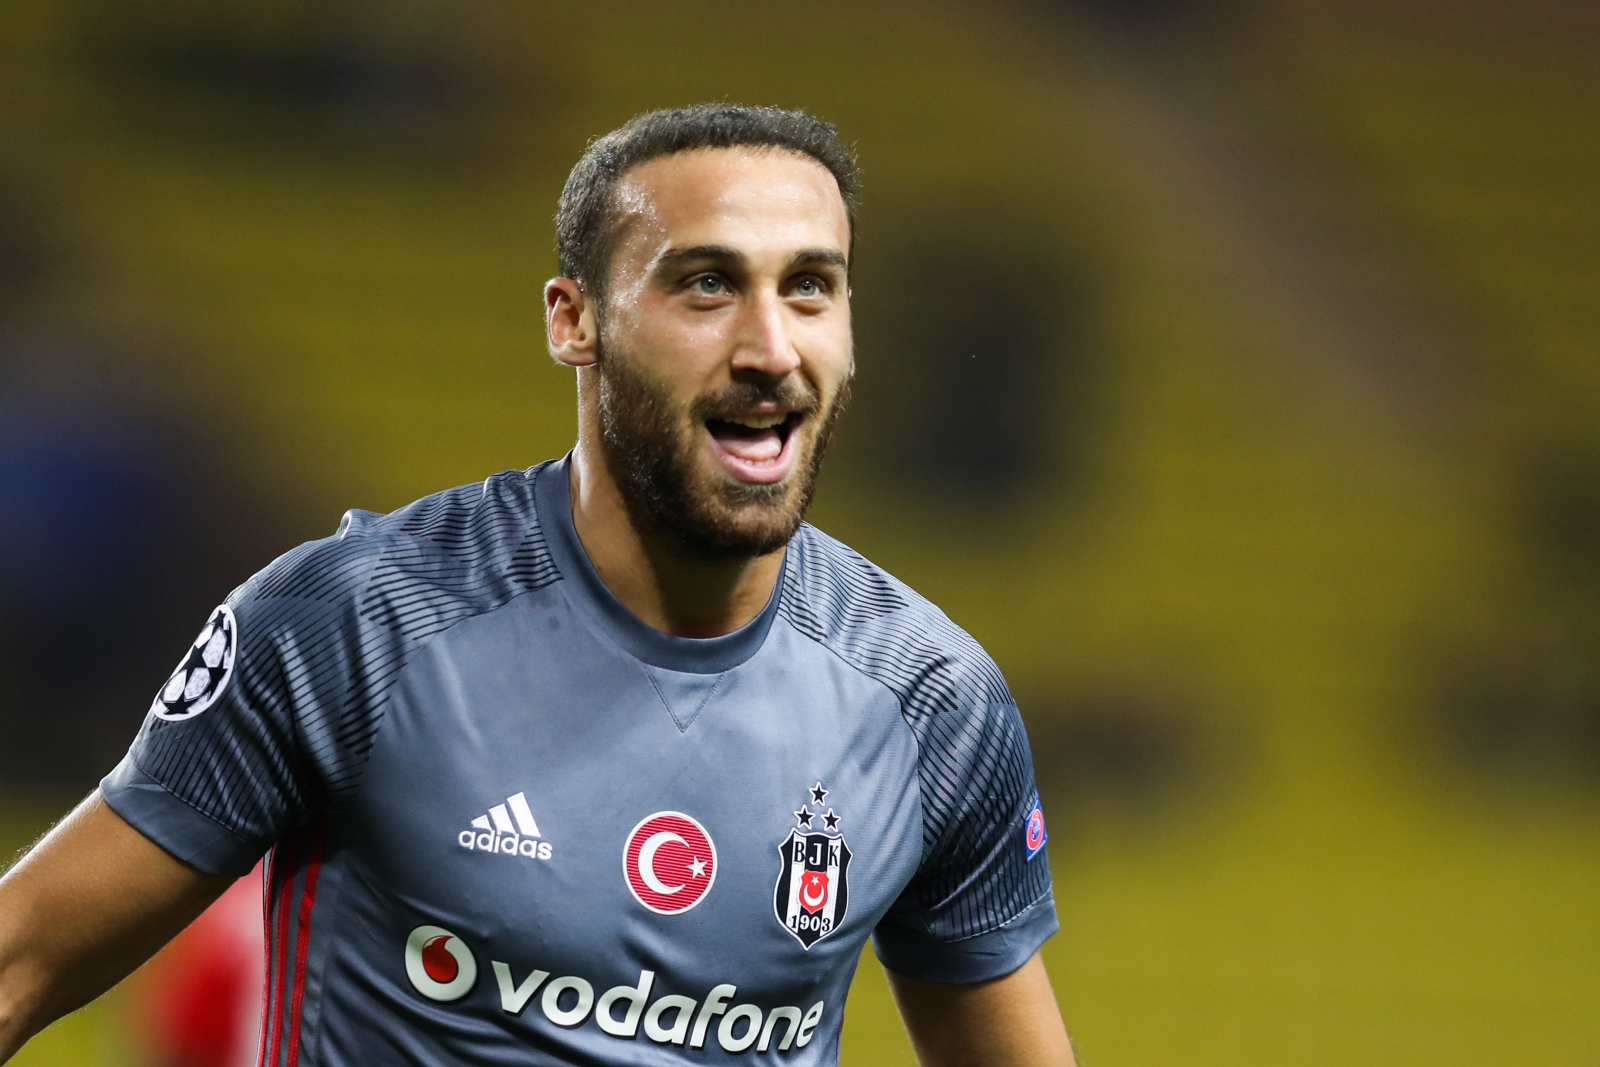 Everton sign striker Tosun on four-and-a-half-year deal